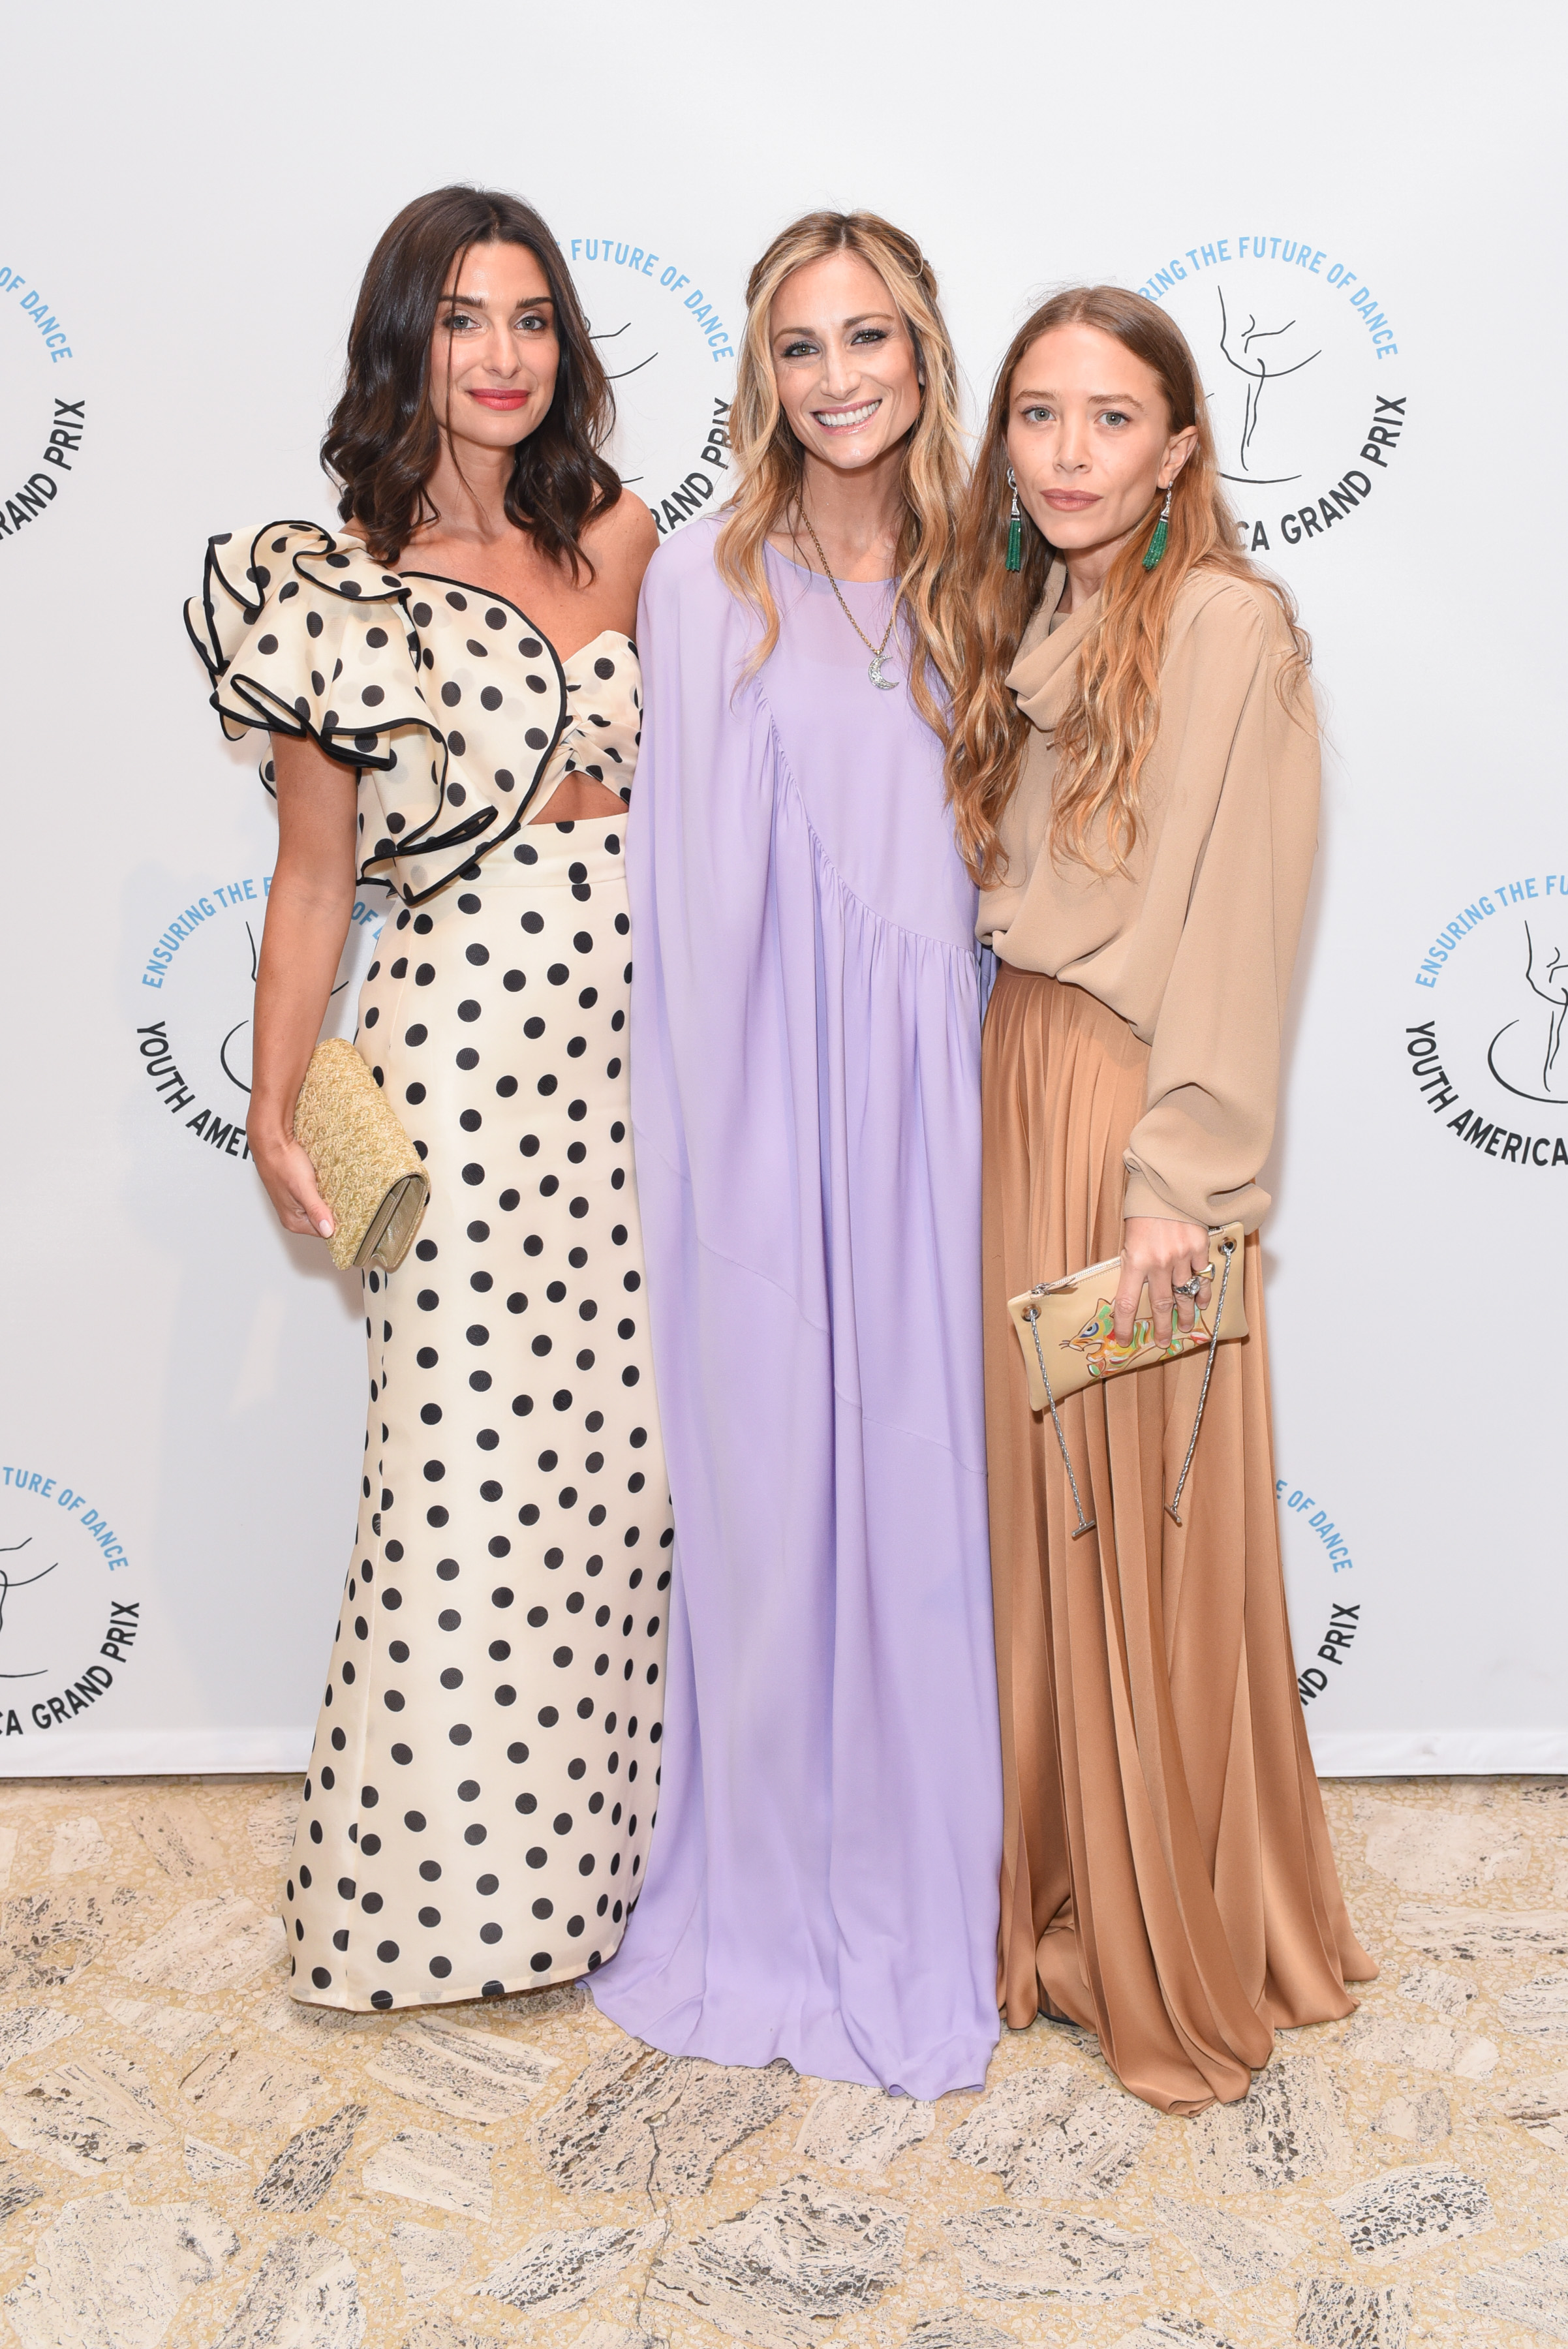 Candice Miller, Marcella Guarino Hymowitz, Mary-Kate Olsen by Presley Ann PMC.JPG